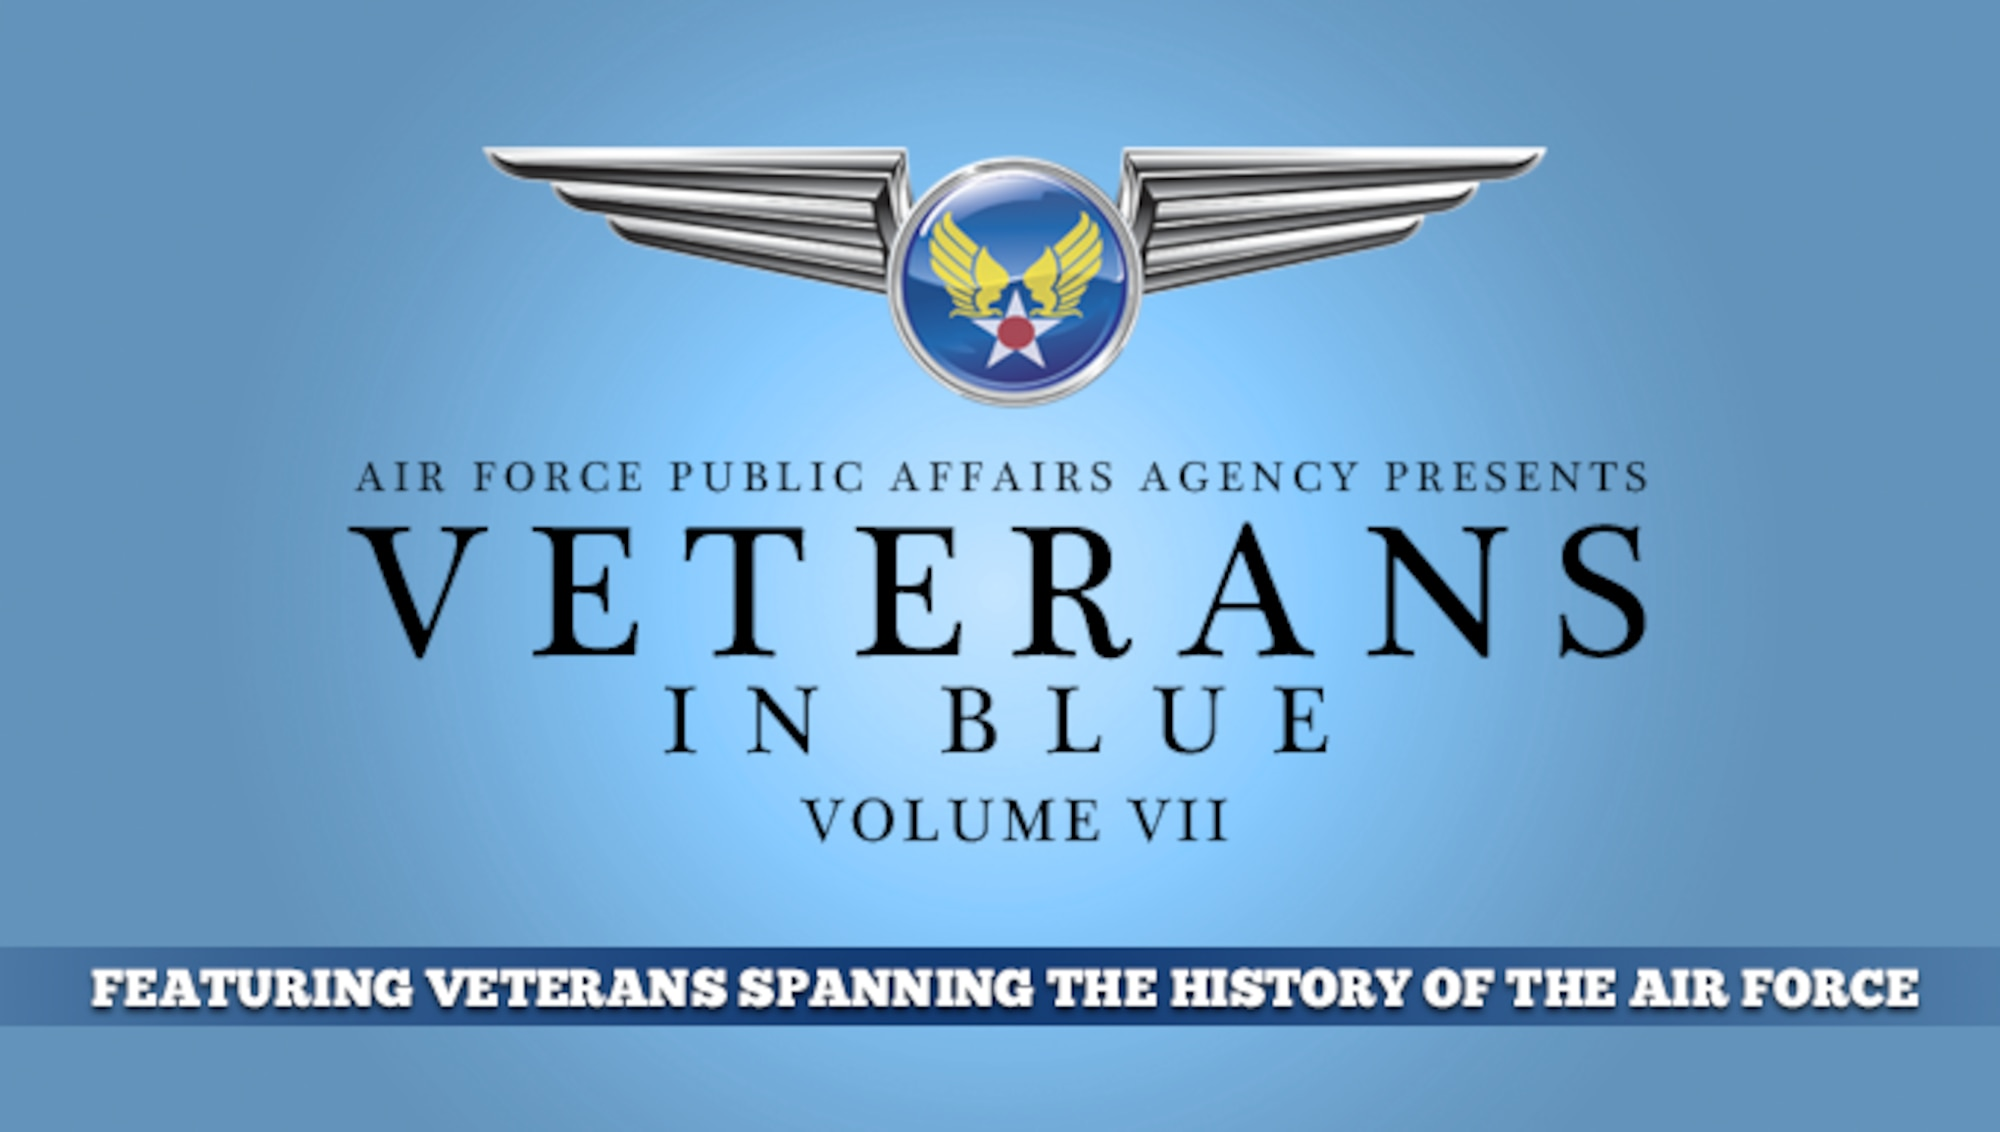 (Air Force graphic)